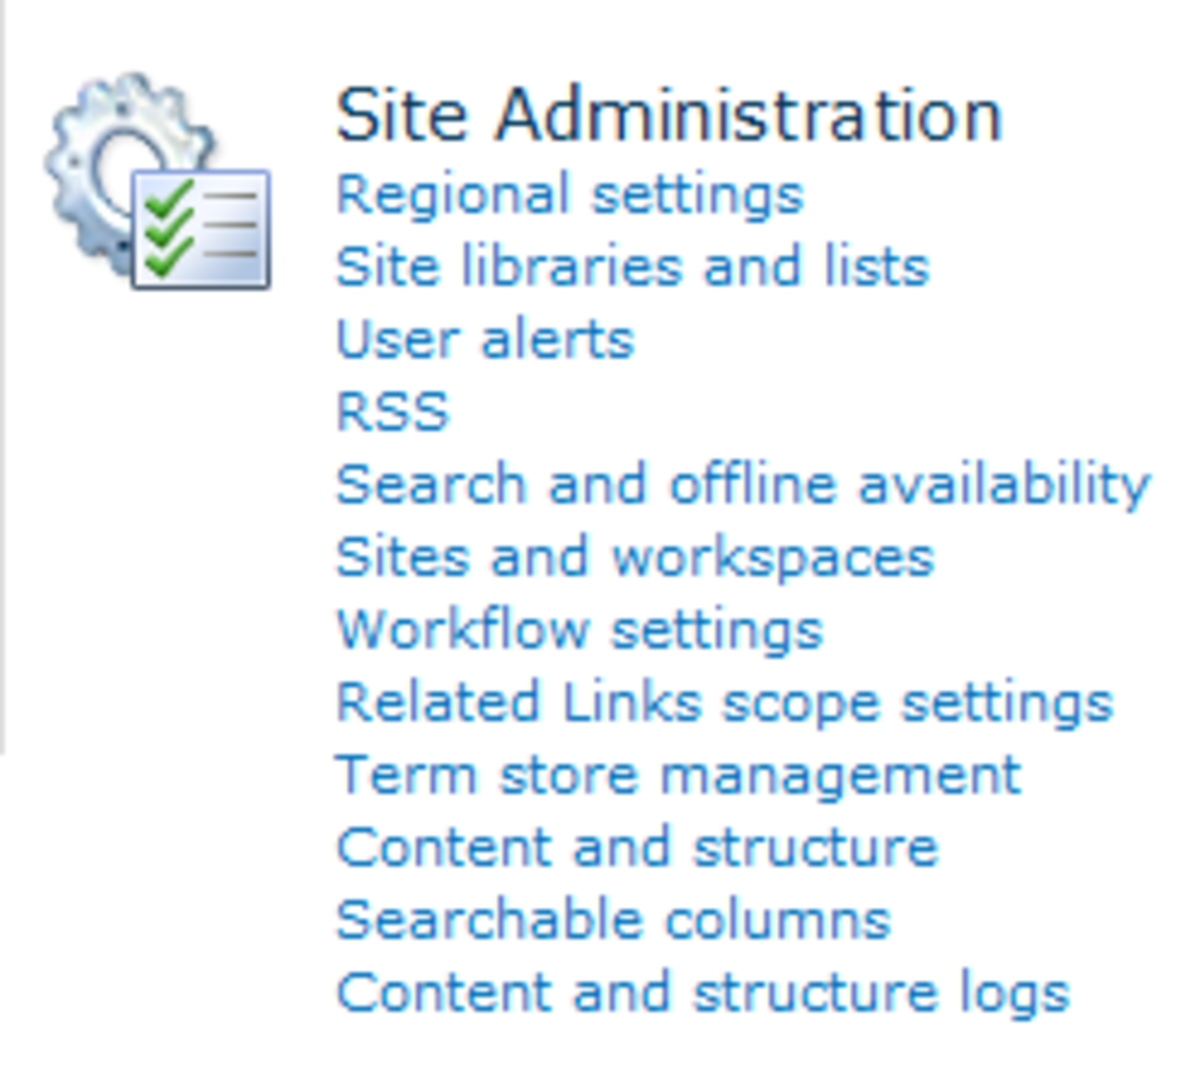 In Site Settings, under Site Administration, click Content and Structure